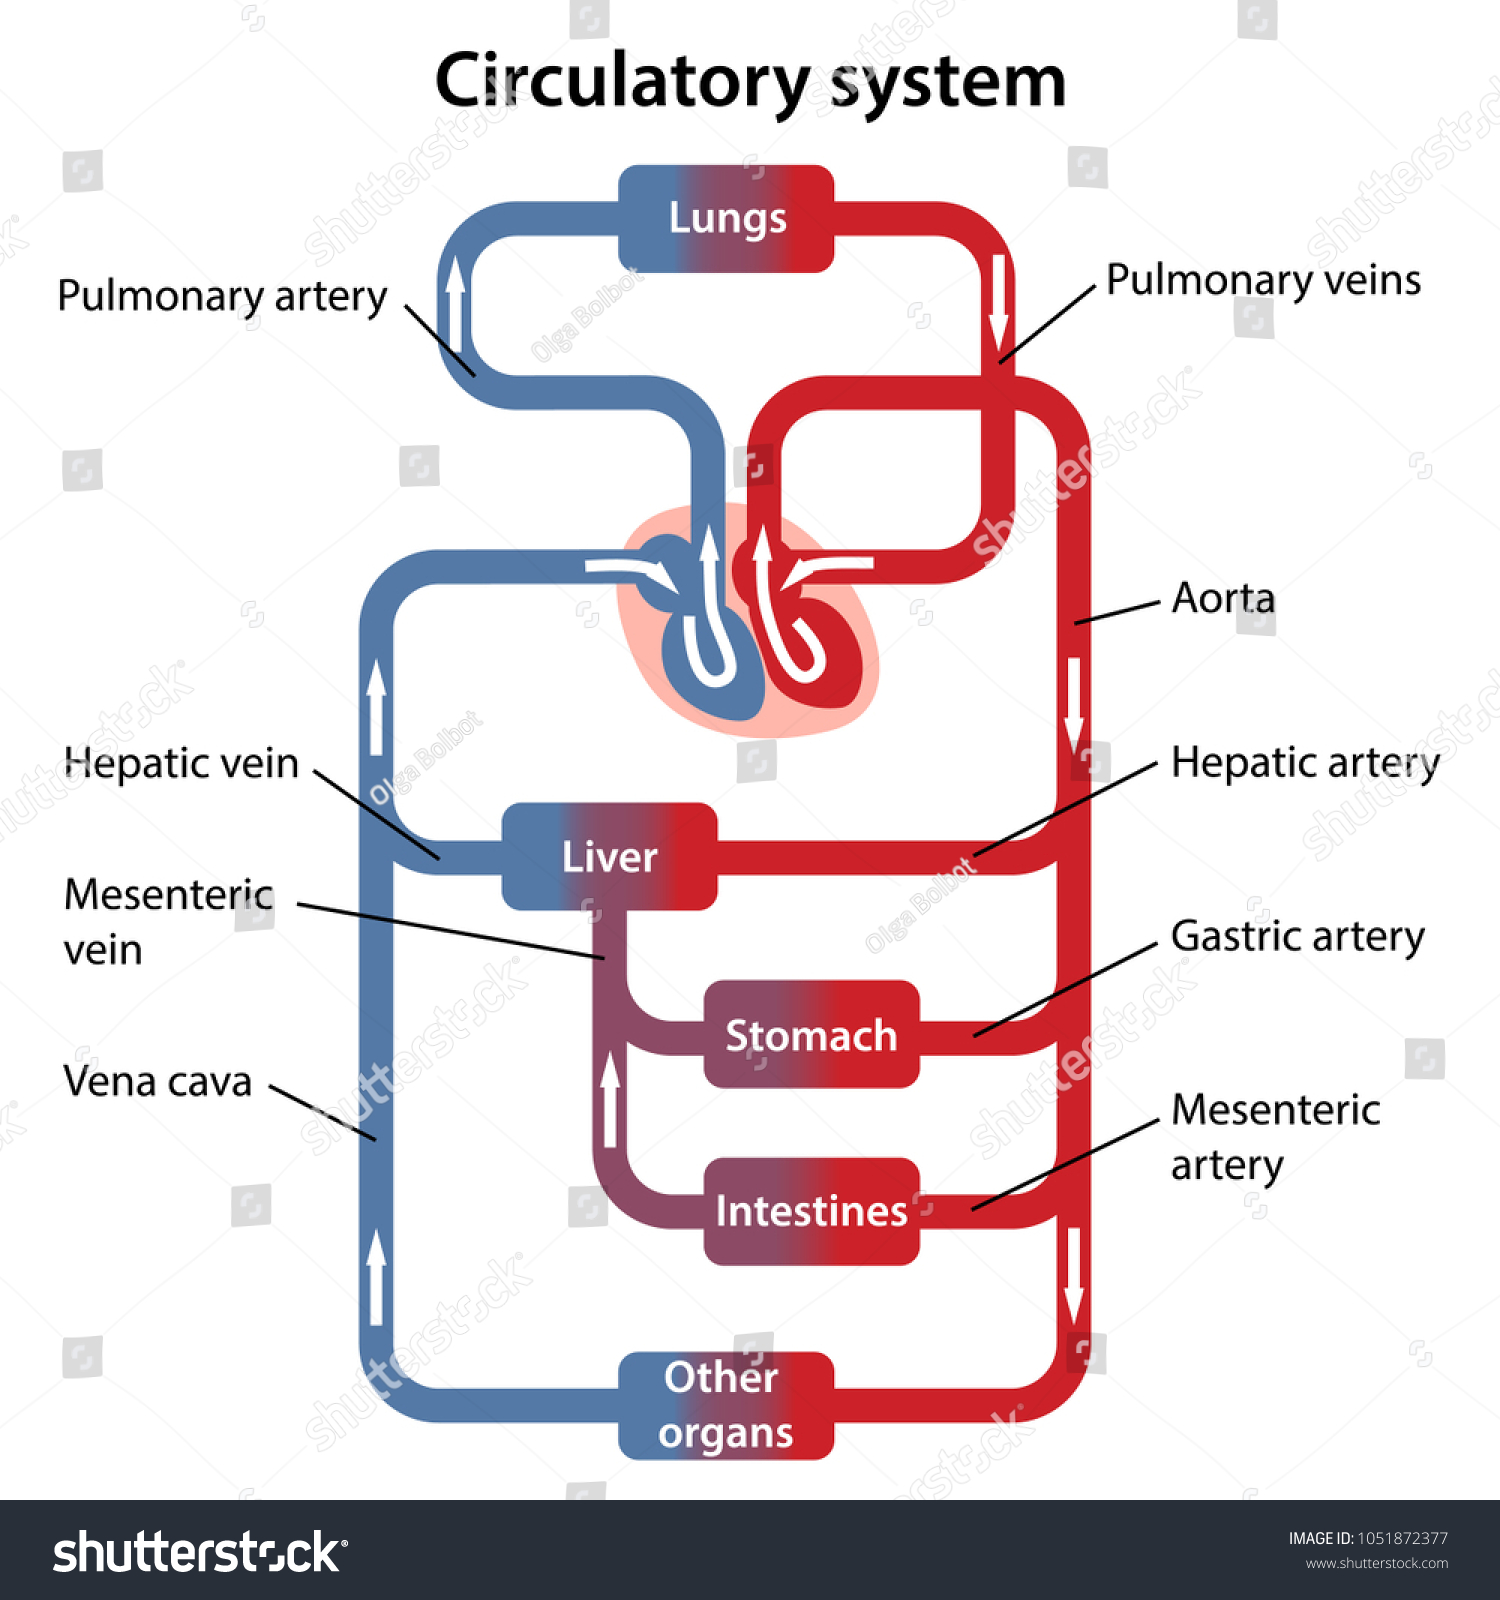 Circulatory System Labeled Diagram | World of Reference